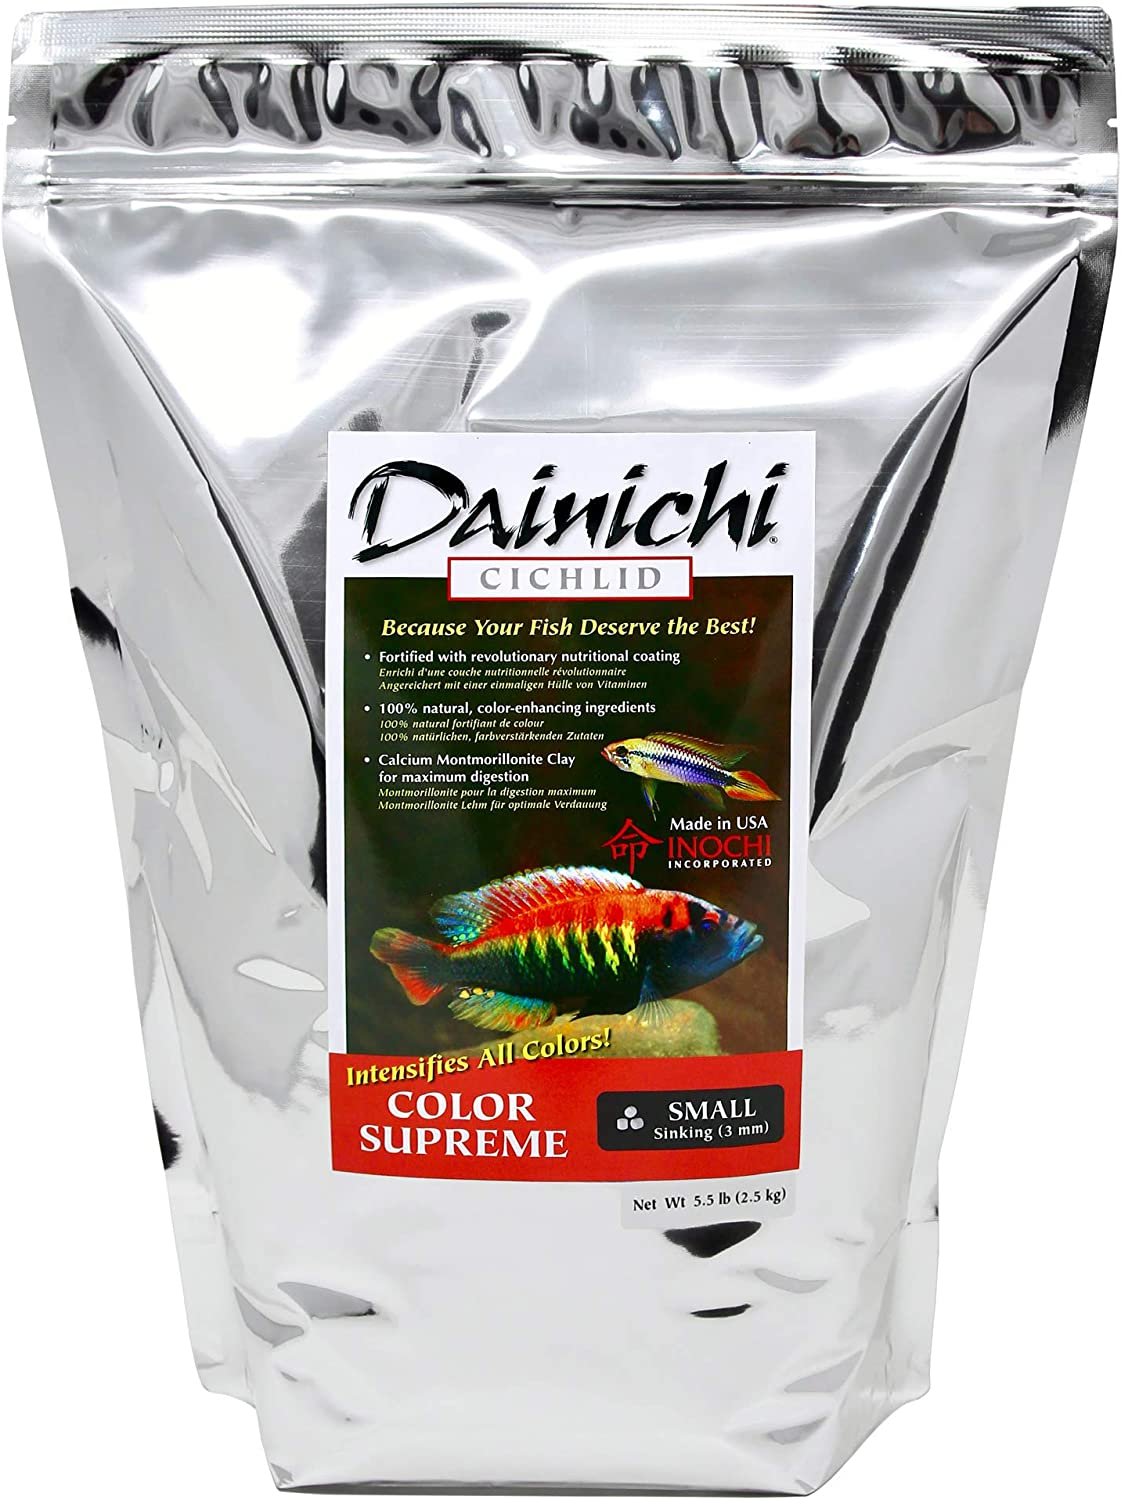 Dainichi Cichlid Food - Color SUPREME Sinking Small Pellet - 5.5 lbs